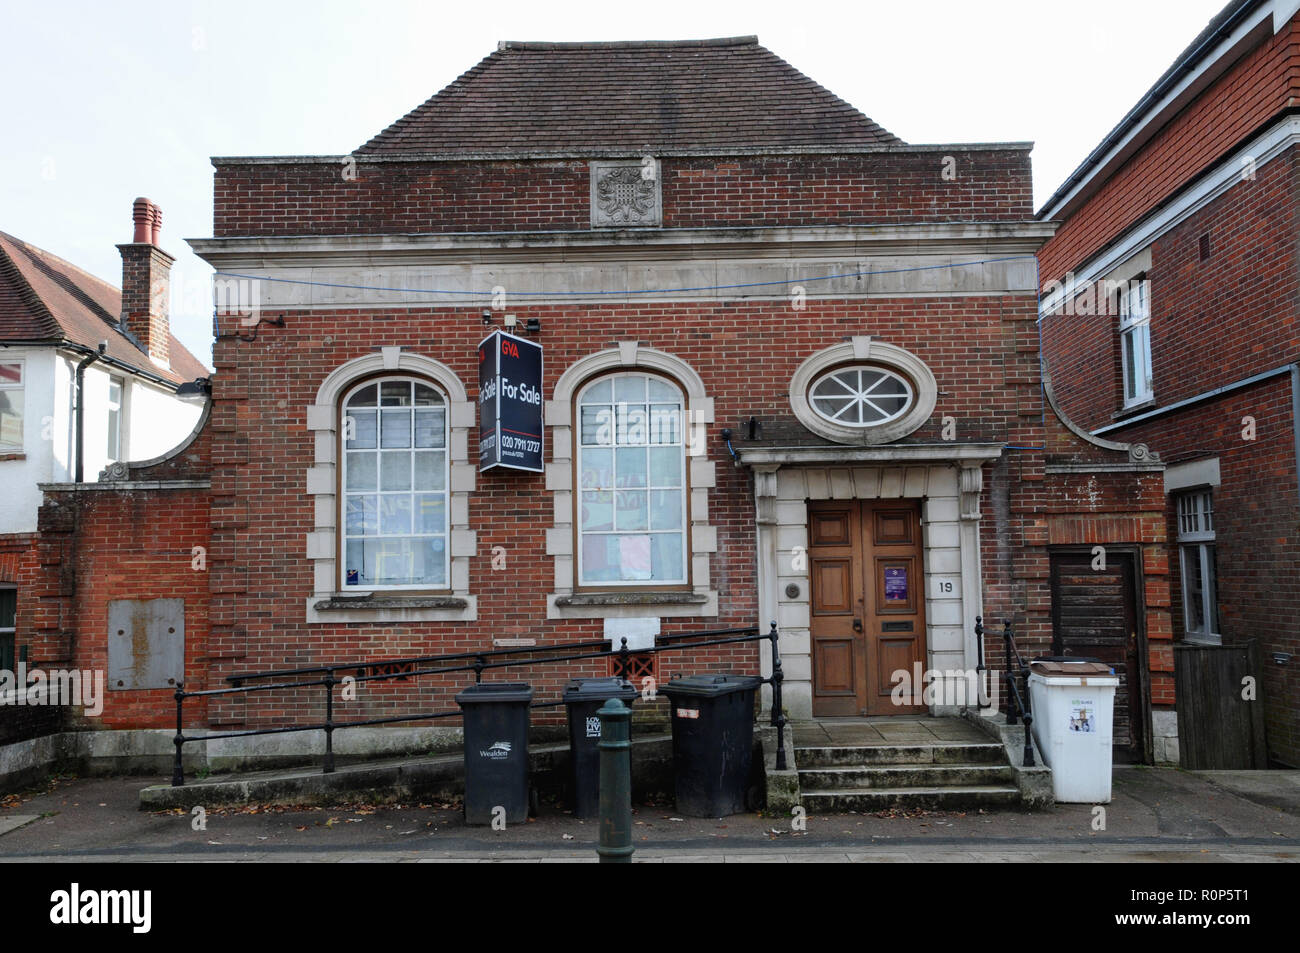 An empty building seeking a buyer in the market town of Heathfield East Sussex. Until June 2018 it was a branch of the Natwest Bank. - Stock Image